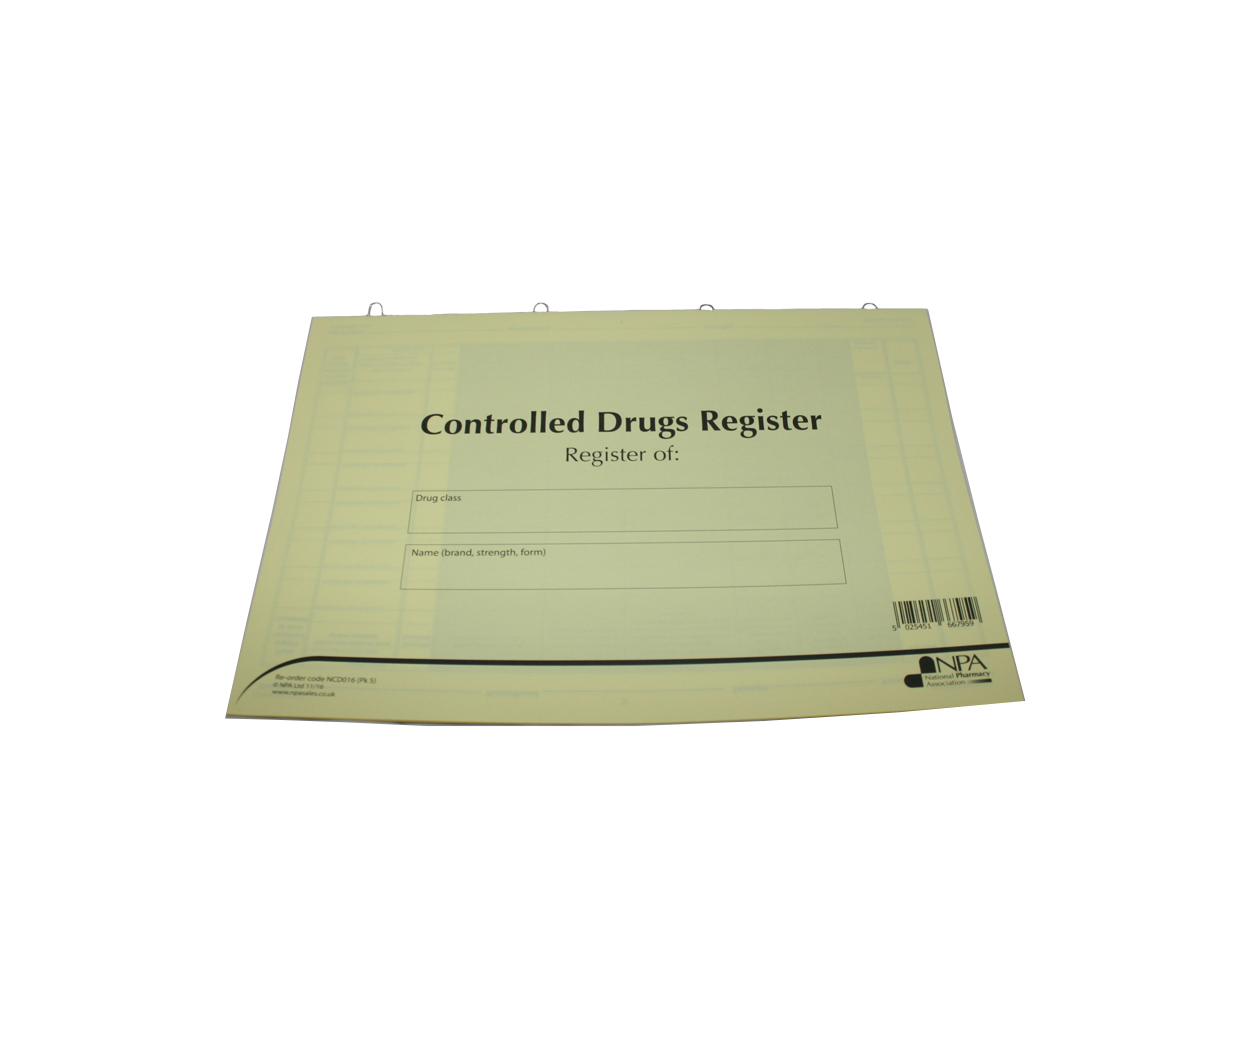 GREAT VALUE - Blank Controlled Drugs Register Inserts - Pack of 5